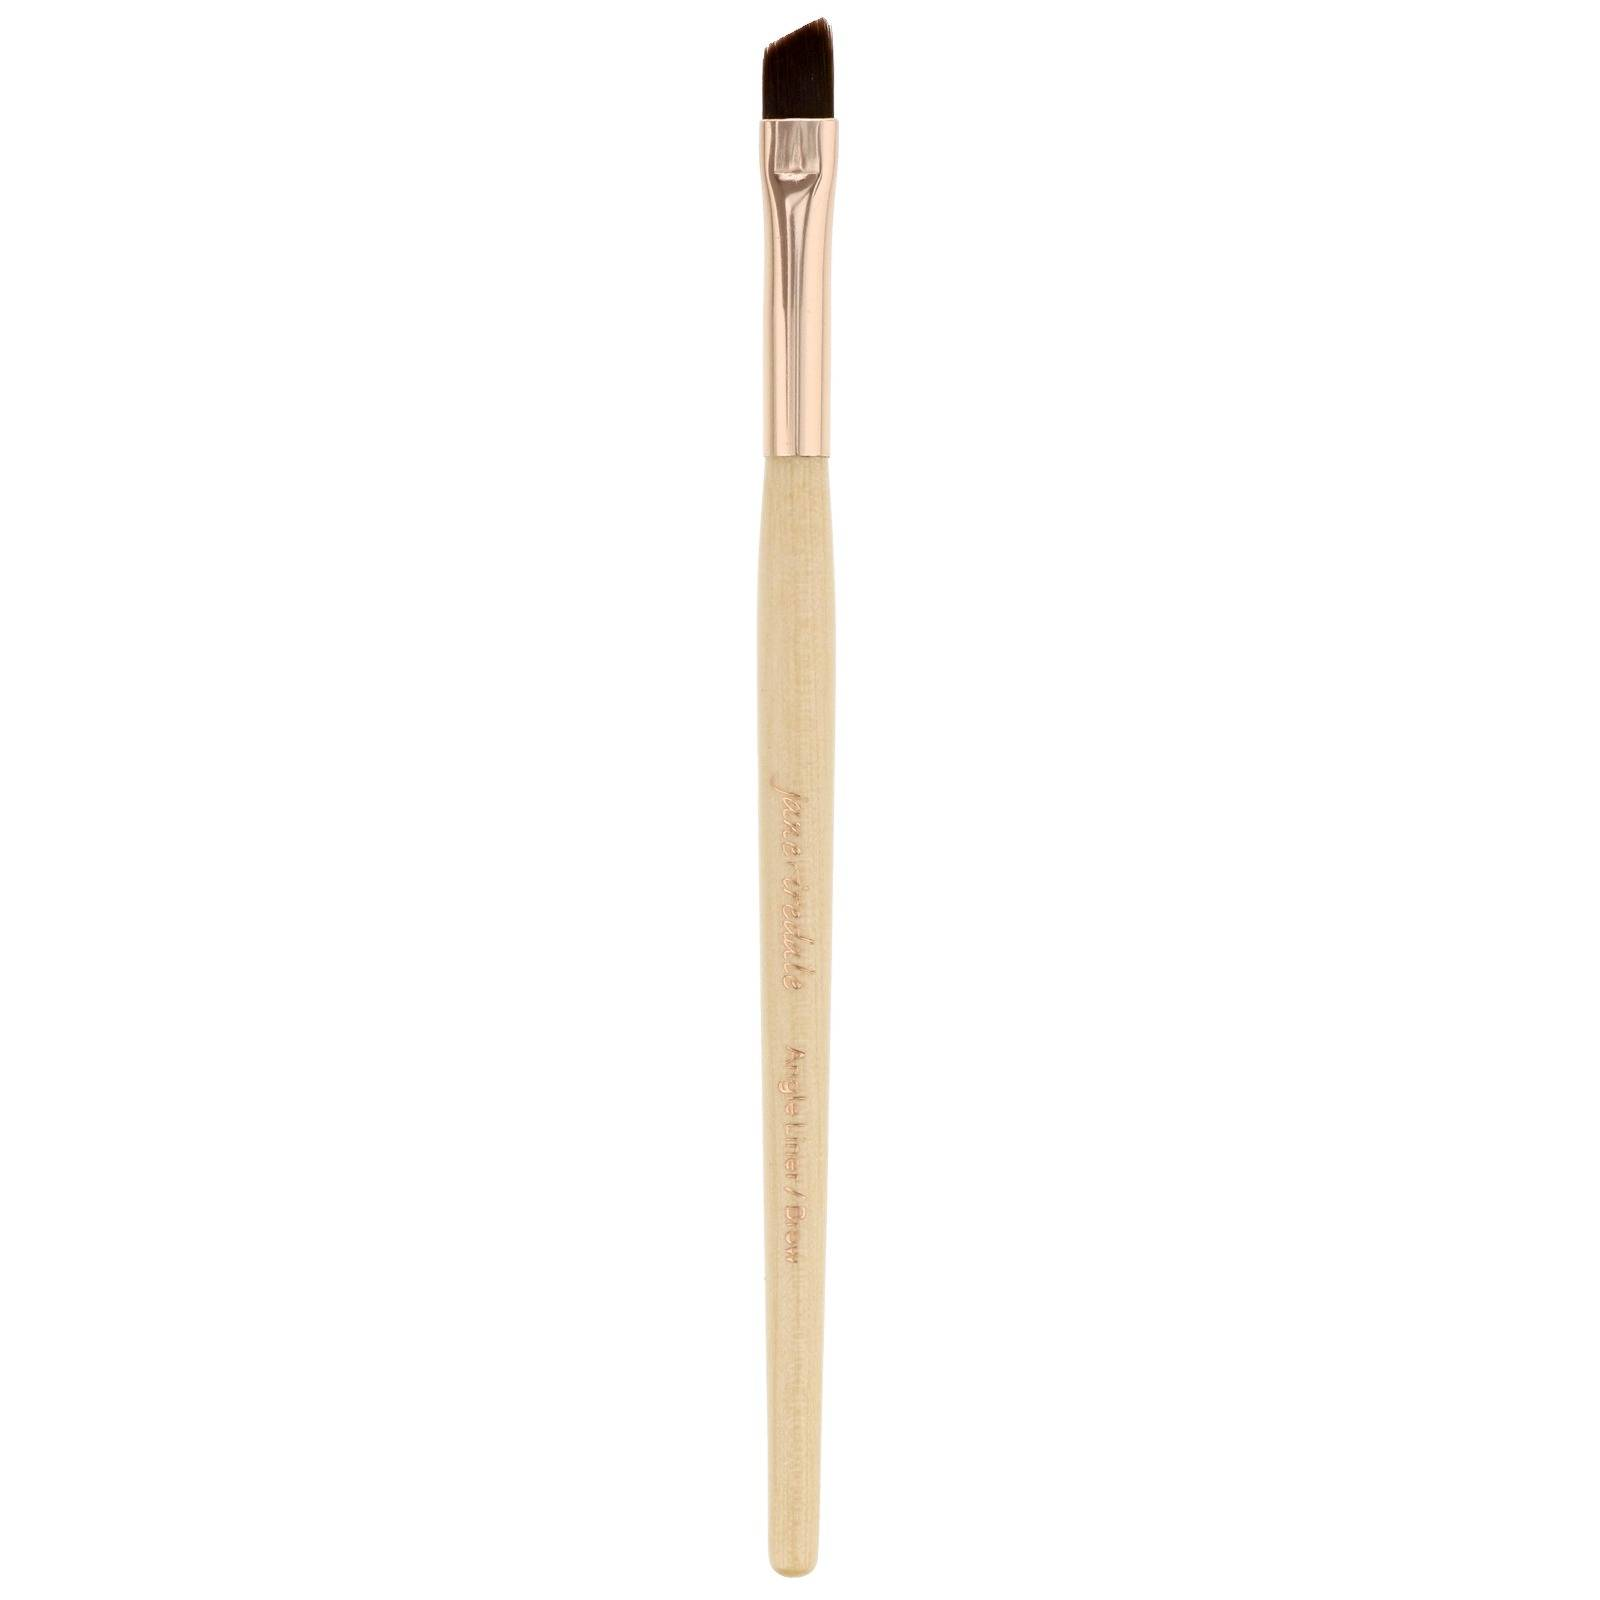 Jane Iredale - Brushes Angle Liner & Brow Brush Rose Gold for Women